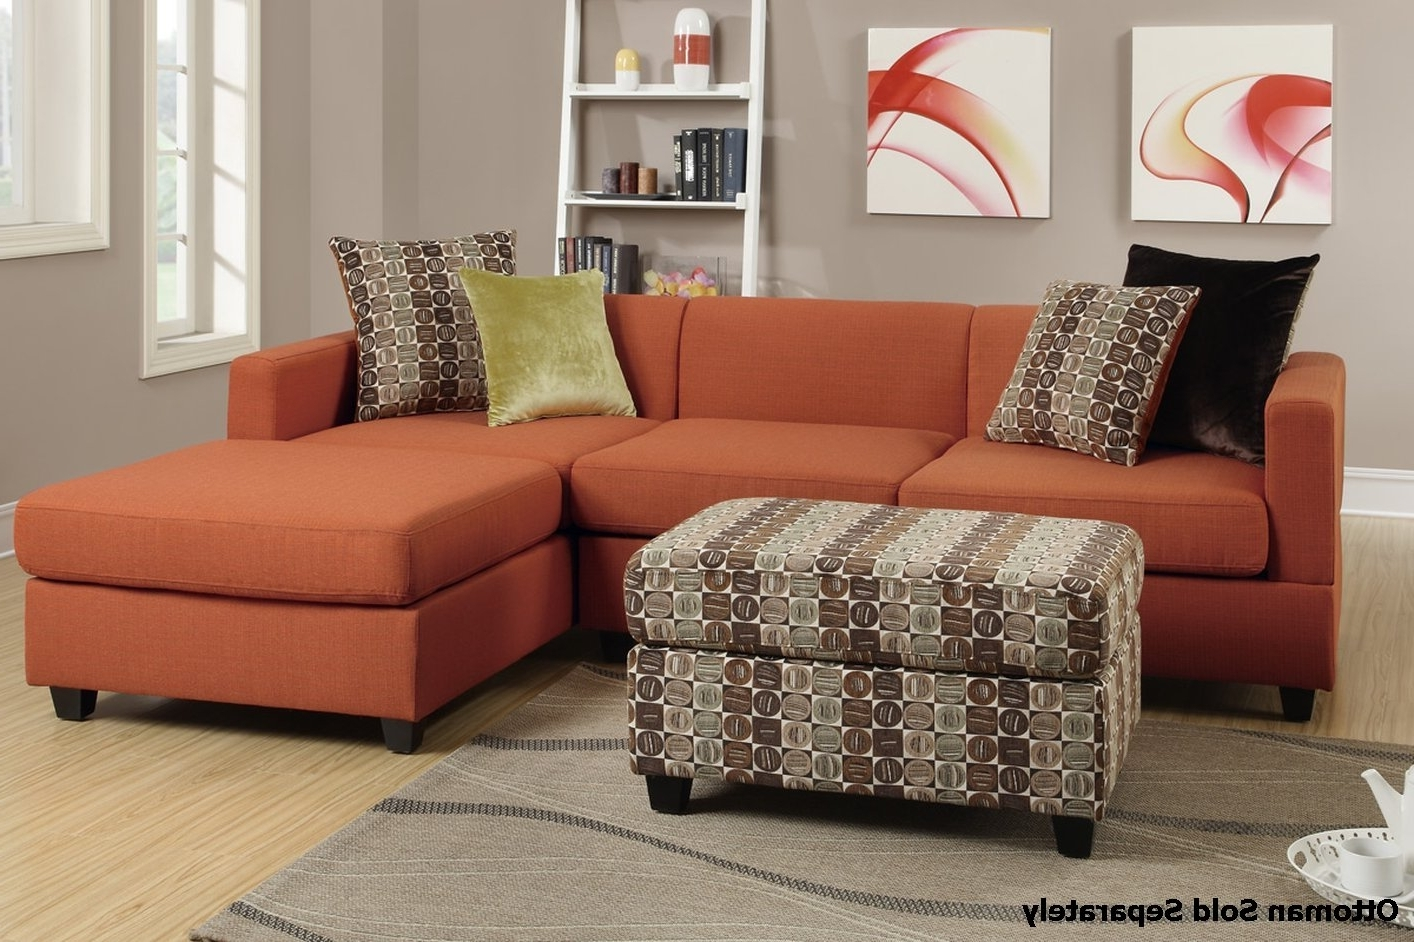 Sectional Sofa Design: Fabric Sectional Sofa Best Ever Ikea White With Latest Fabric Sectional Sofas (View 15 of 20)